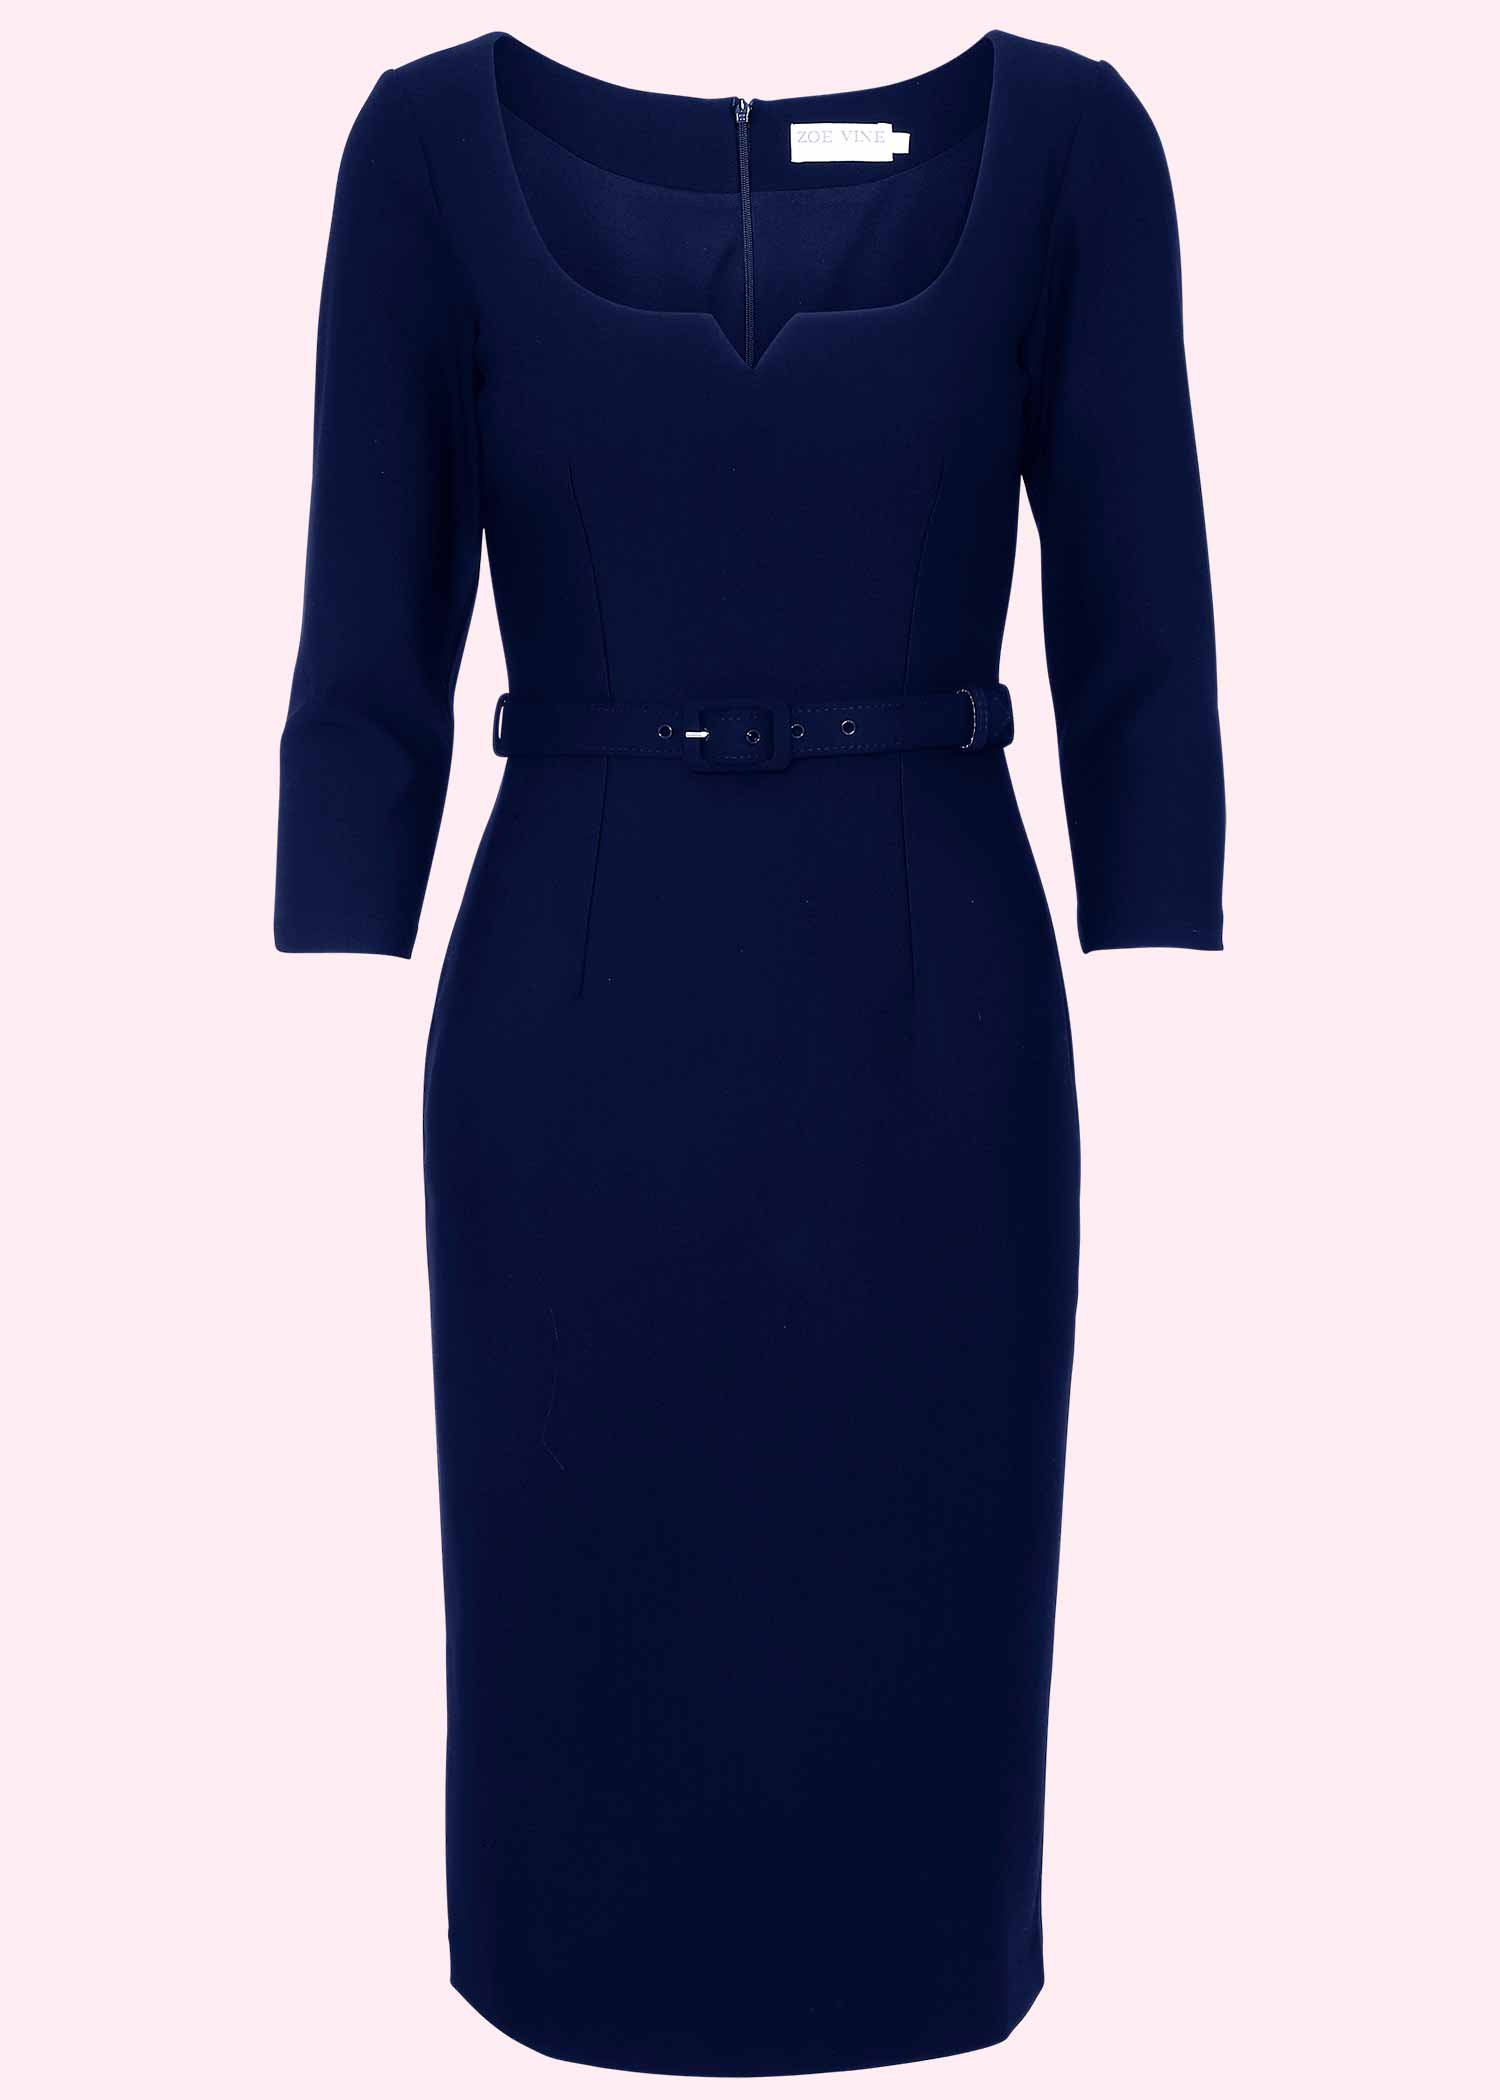 Navy Blue pencil dress in 50s style from Zoe Vine